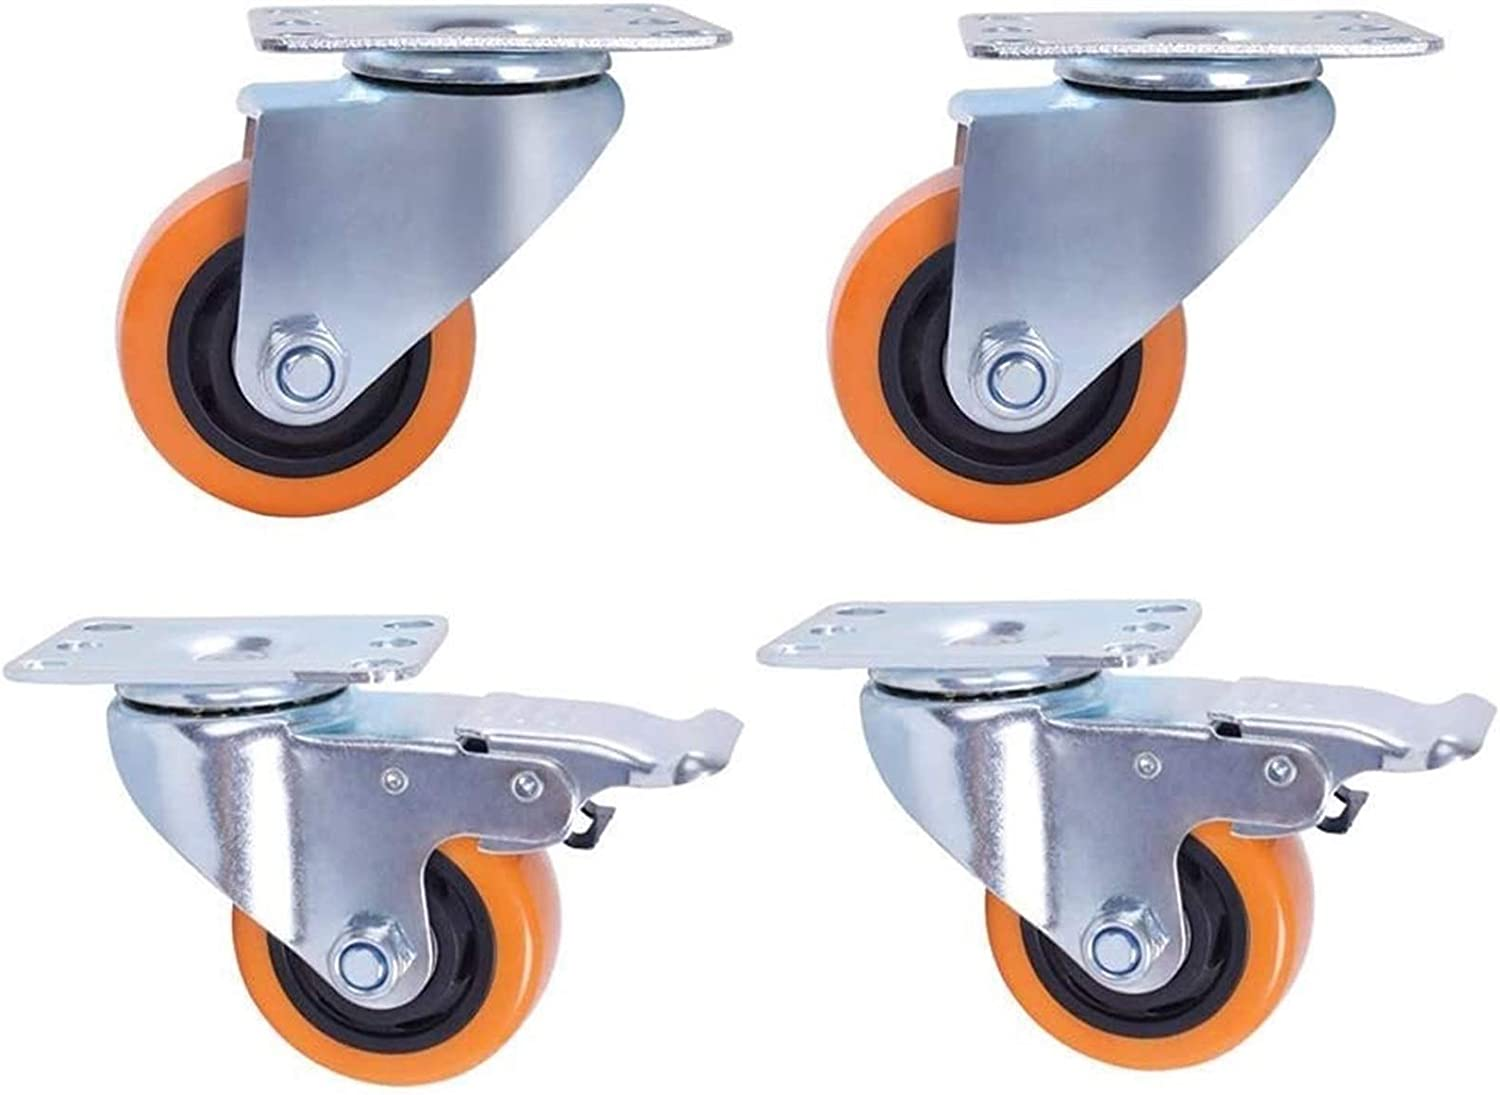 Casters Special price 4pcs Furniture 3 4Inch Wheels Du Wear-Resistant New life Heavy PU